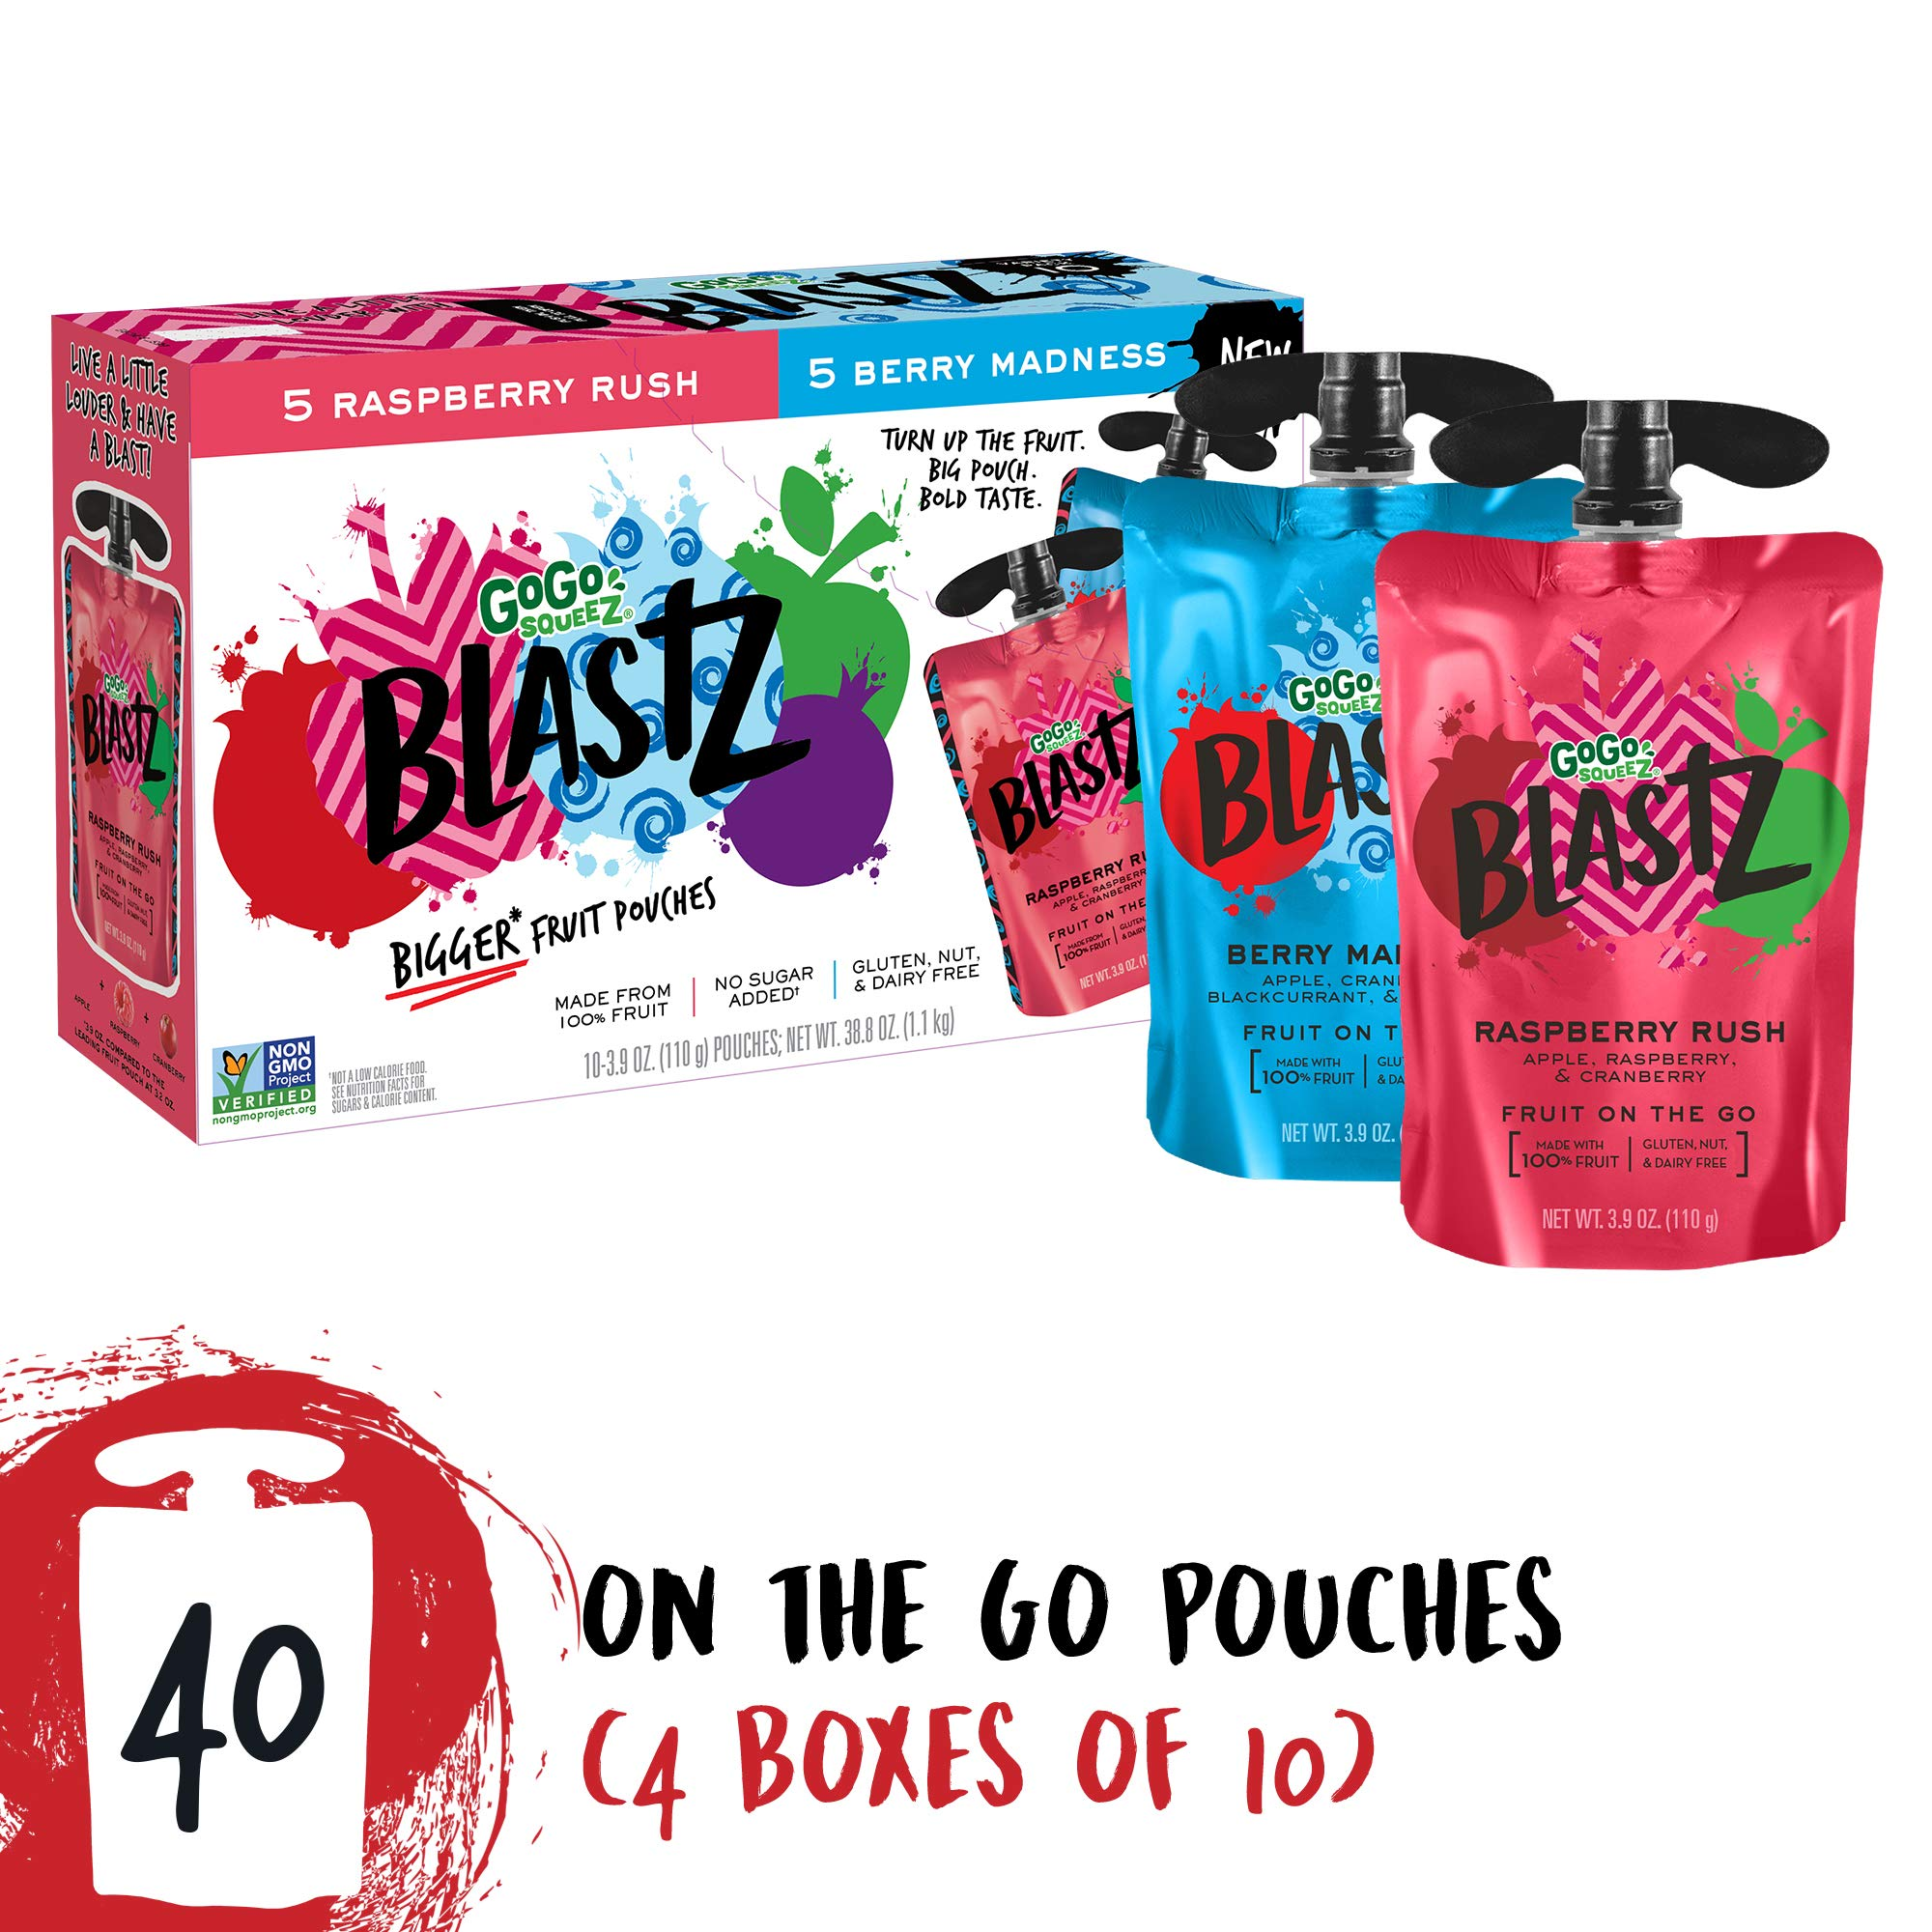 GoGo squeeZ BlastZ Fruit Pouches on the Go, Variety Pack (Raspberry Rush/Berry Madness), 3.88 oz (40 Pouches), Gluten Free, Vegan Friendly, Healthy Snack, Unsweetened, Recloseable, BPA Free Pouches by GoGo SqueeZ